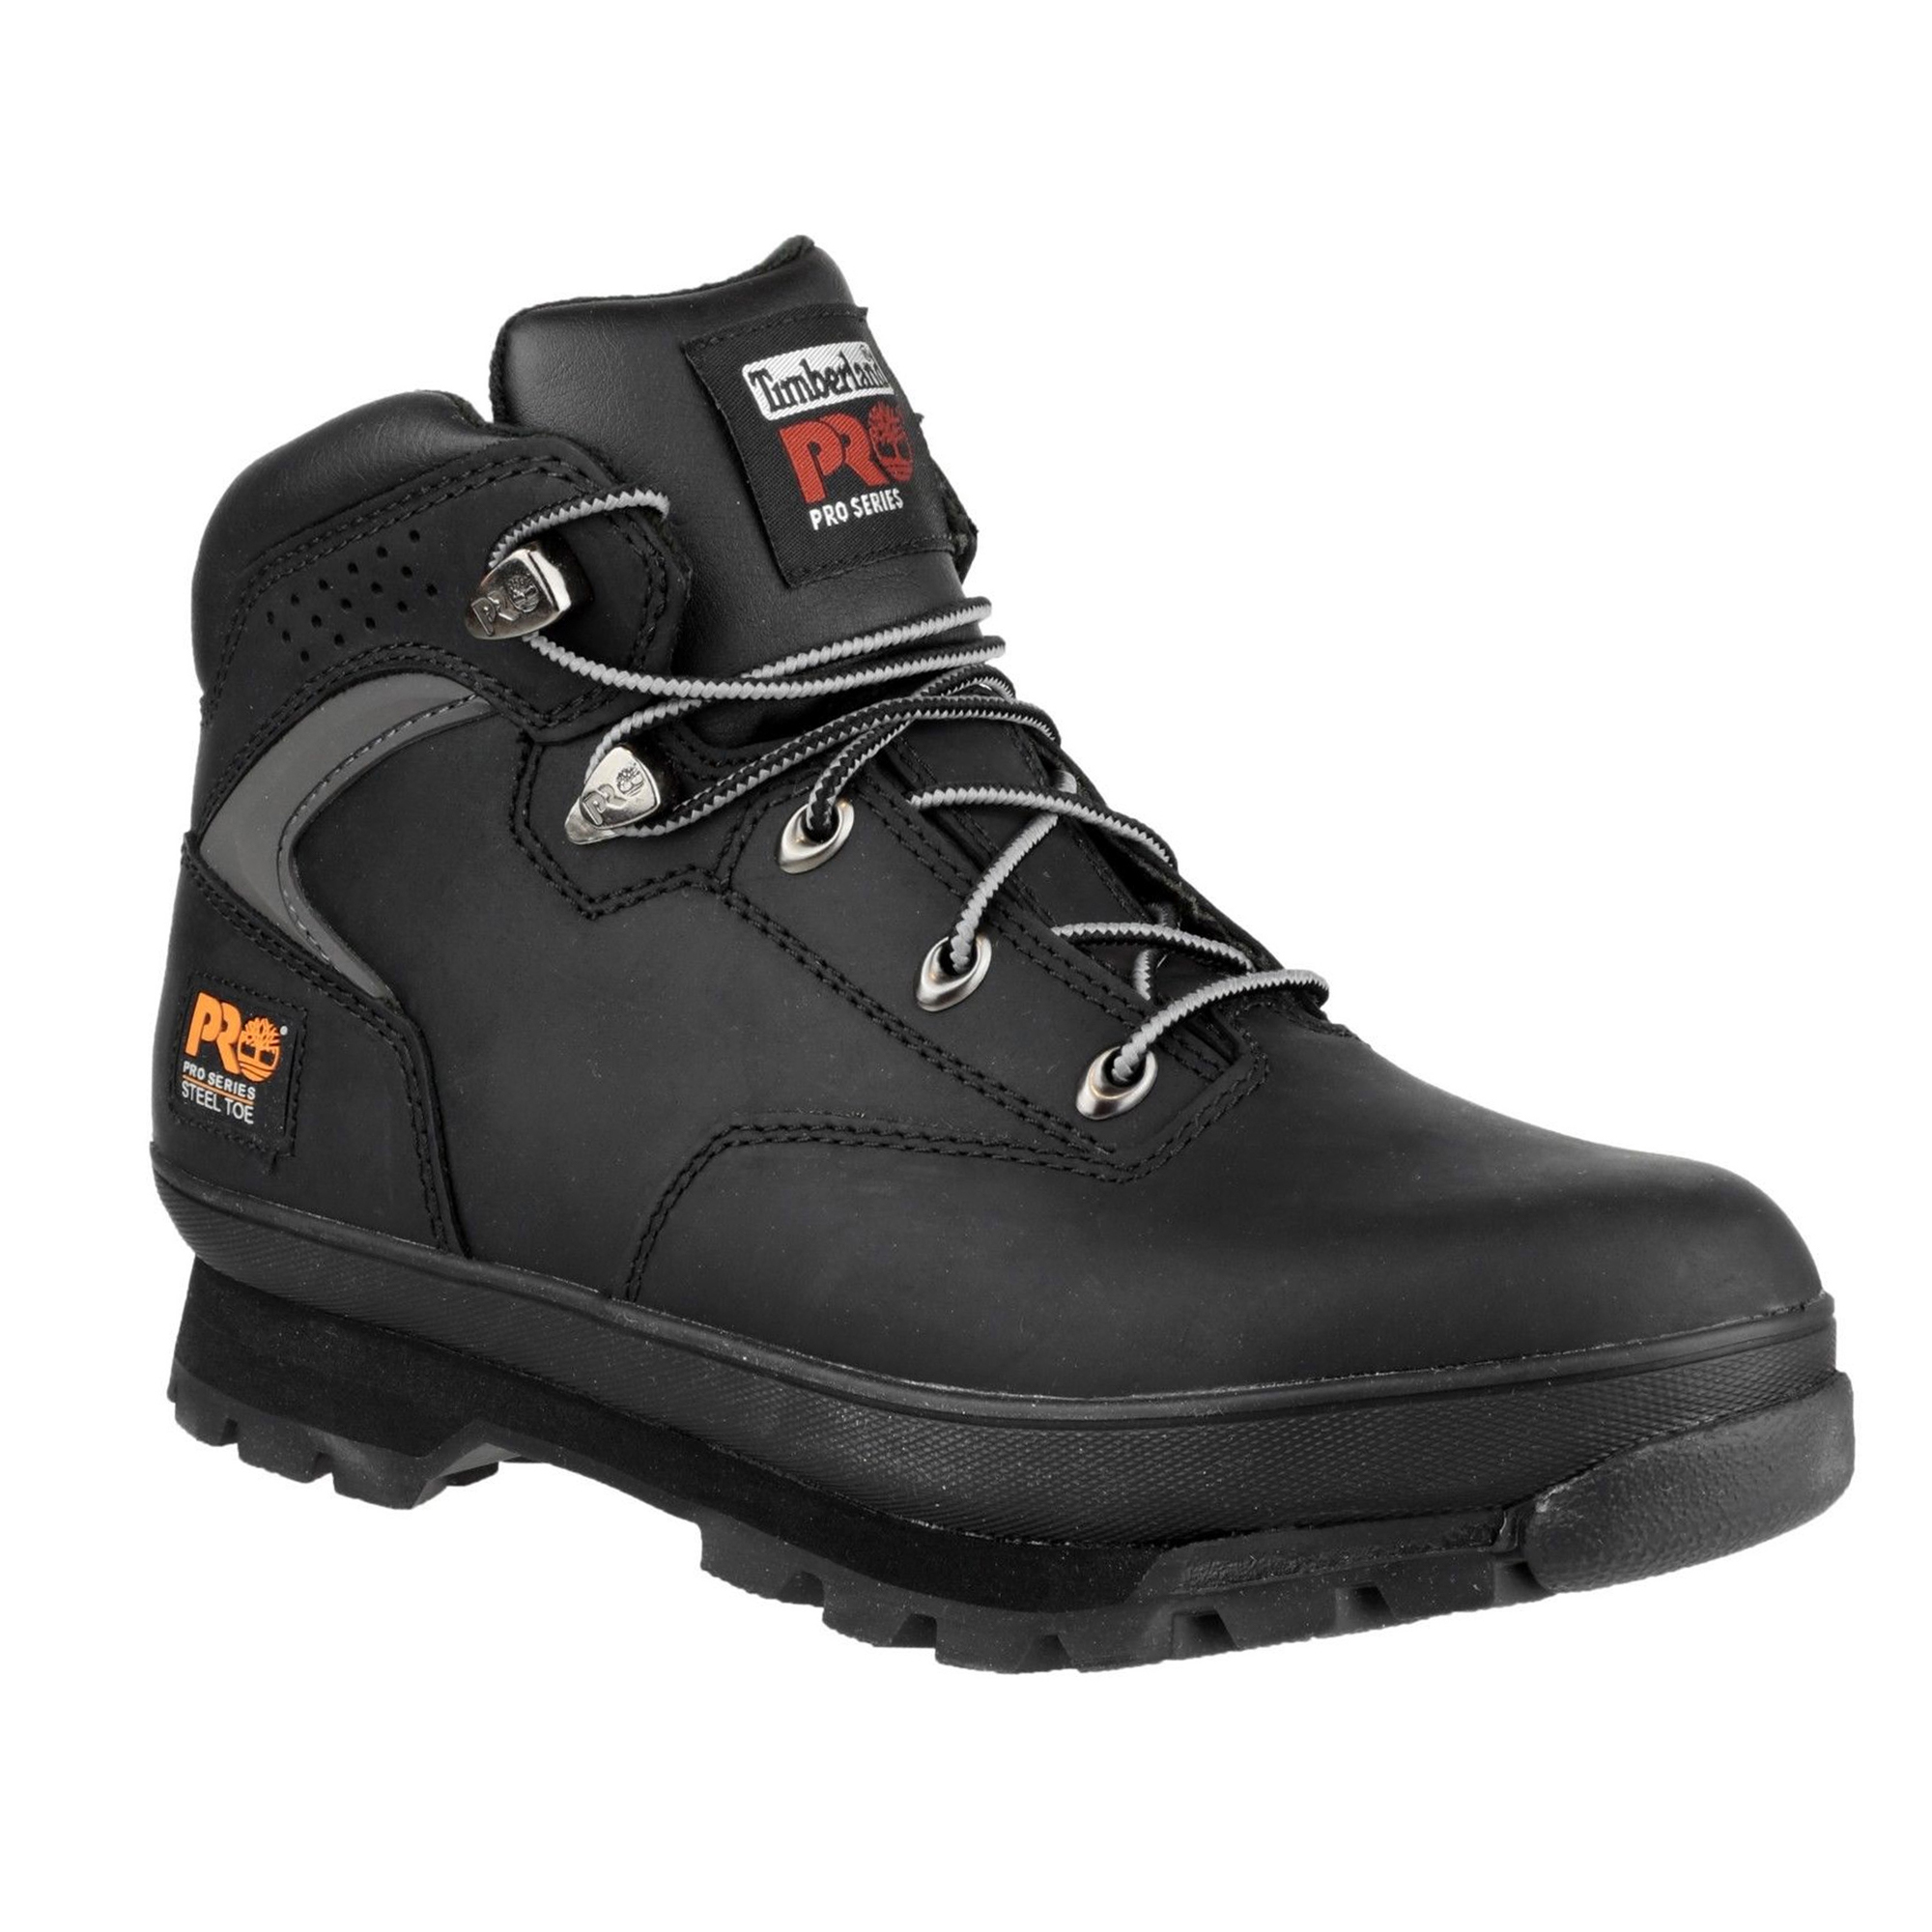 timberland euro hiker safety boots black